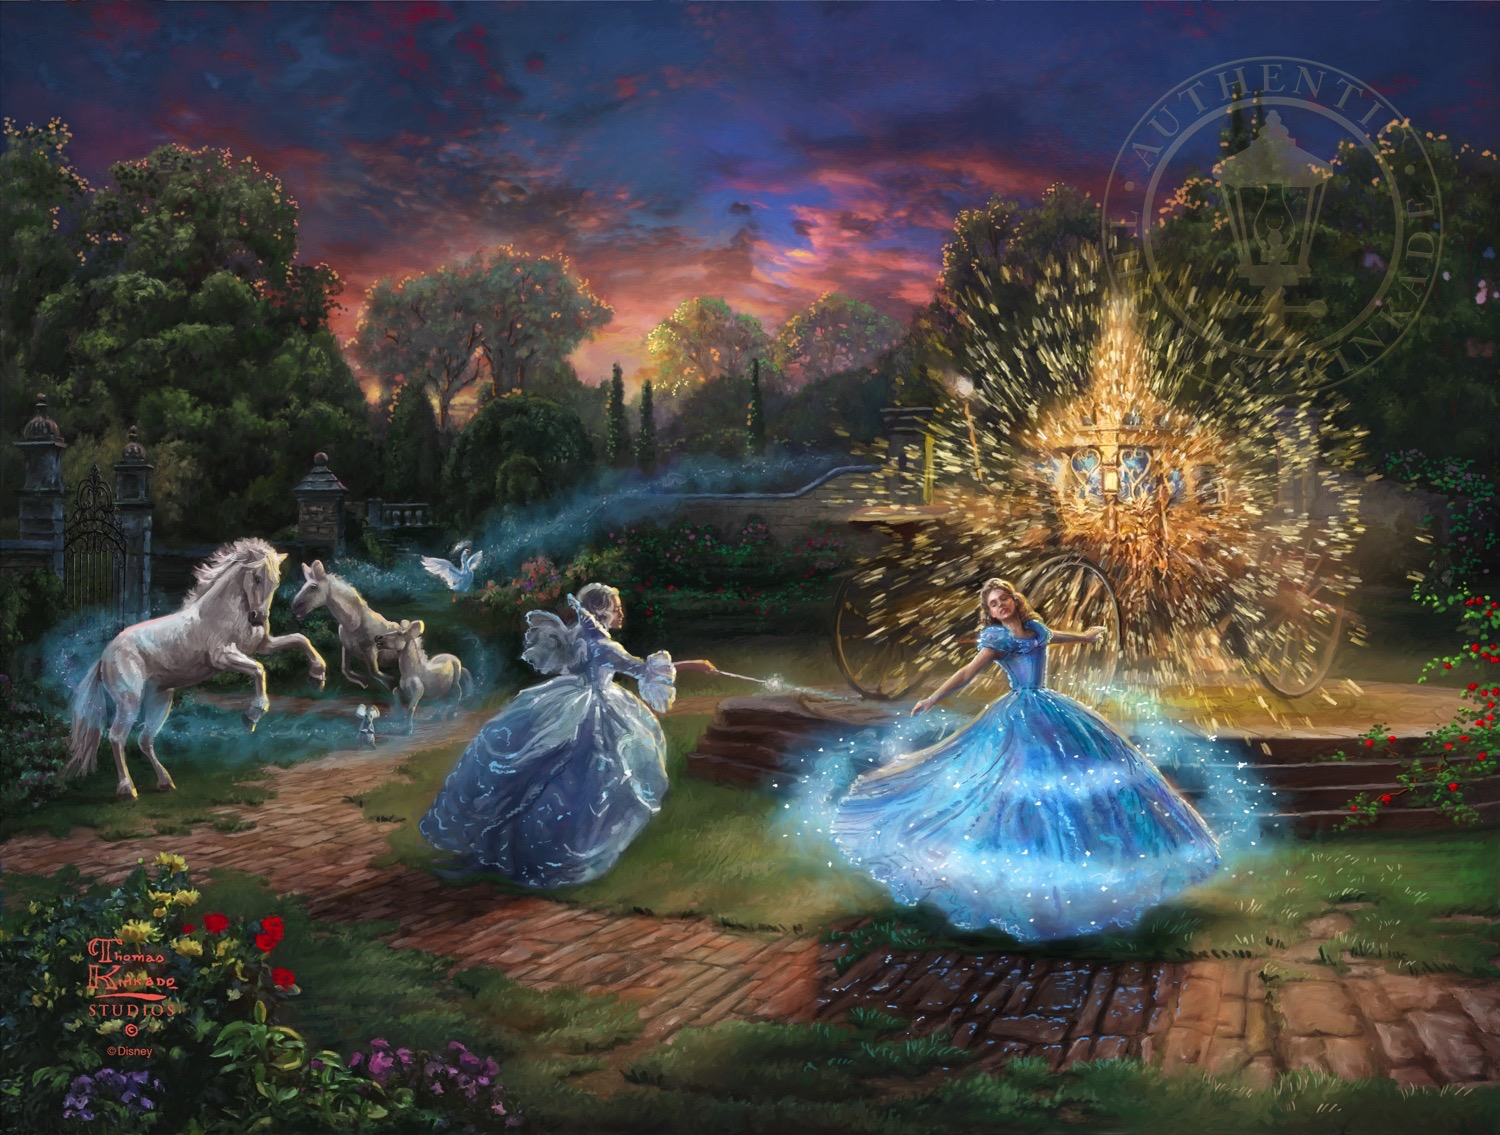 Wishes Granted The Thomas Kinkade Company